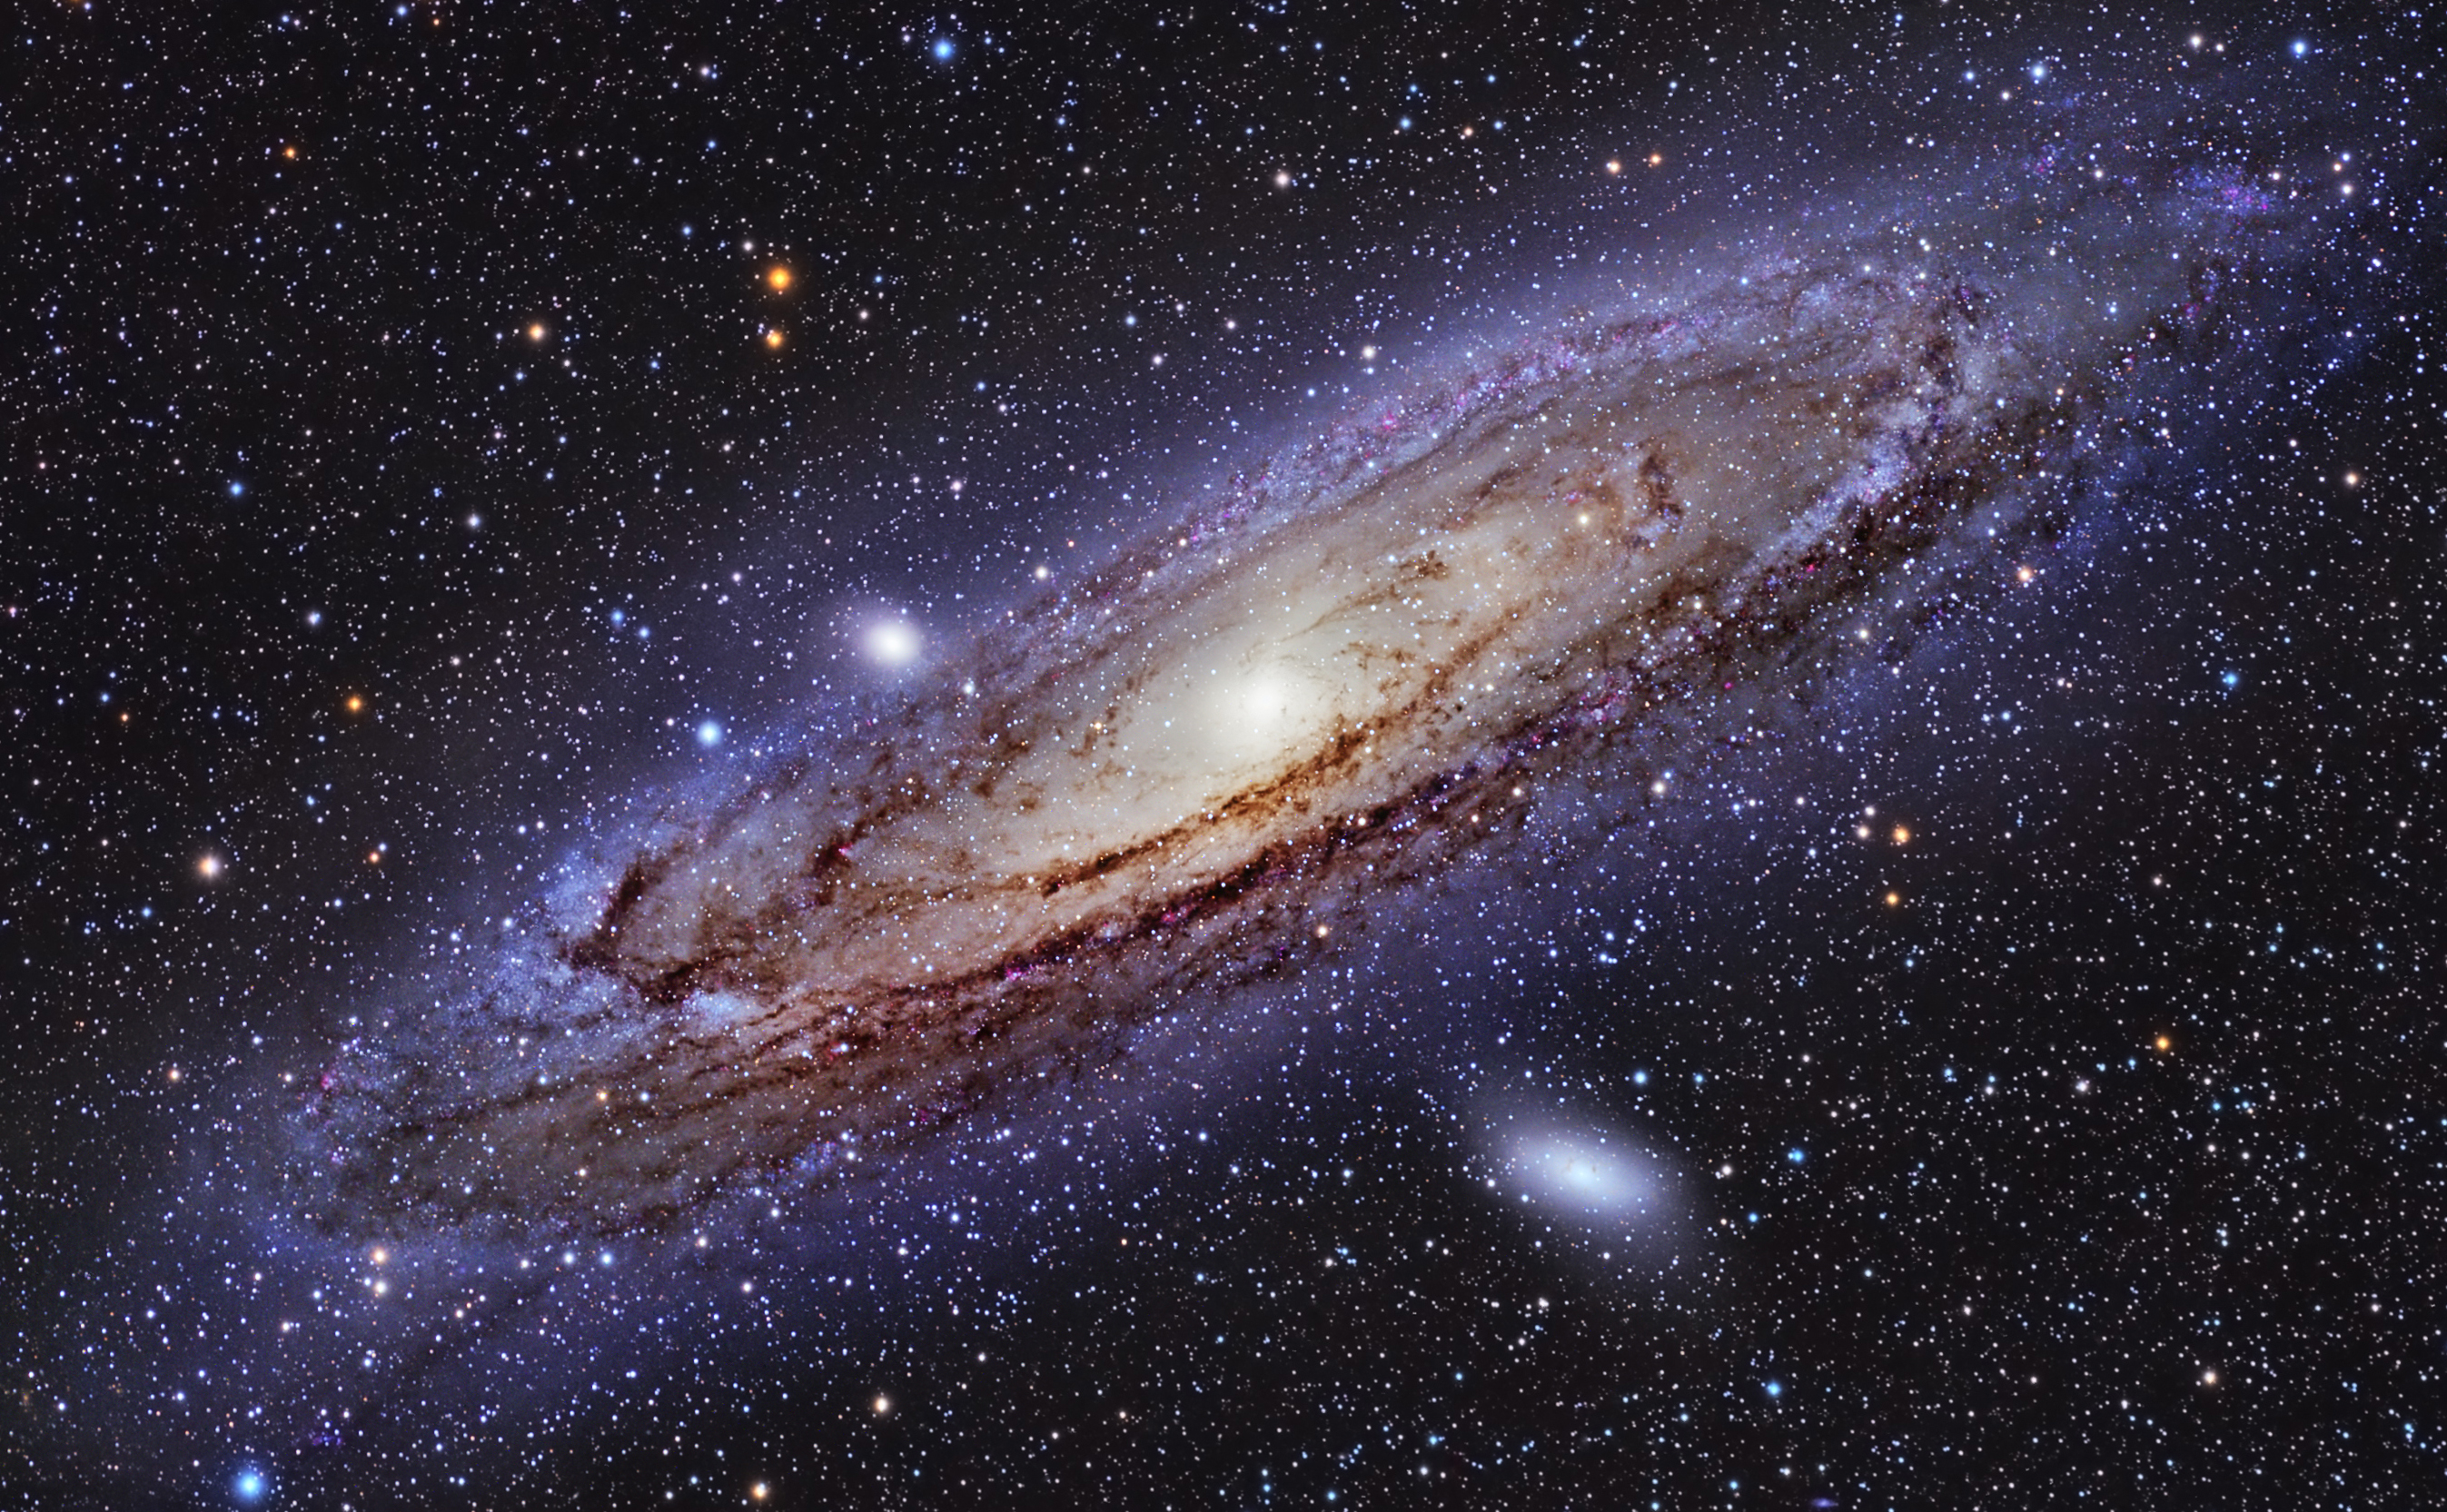 andromeda galaxy - photo #21